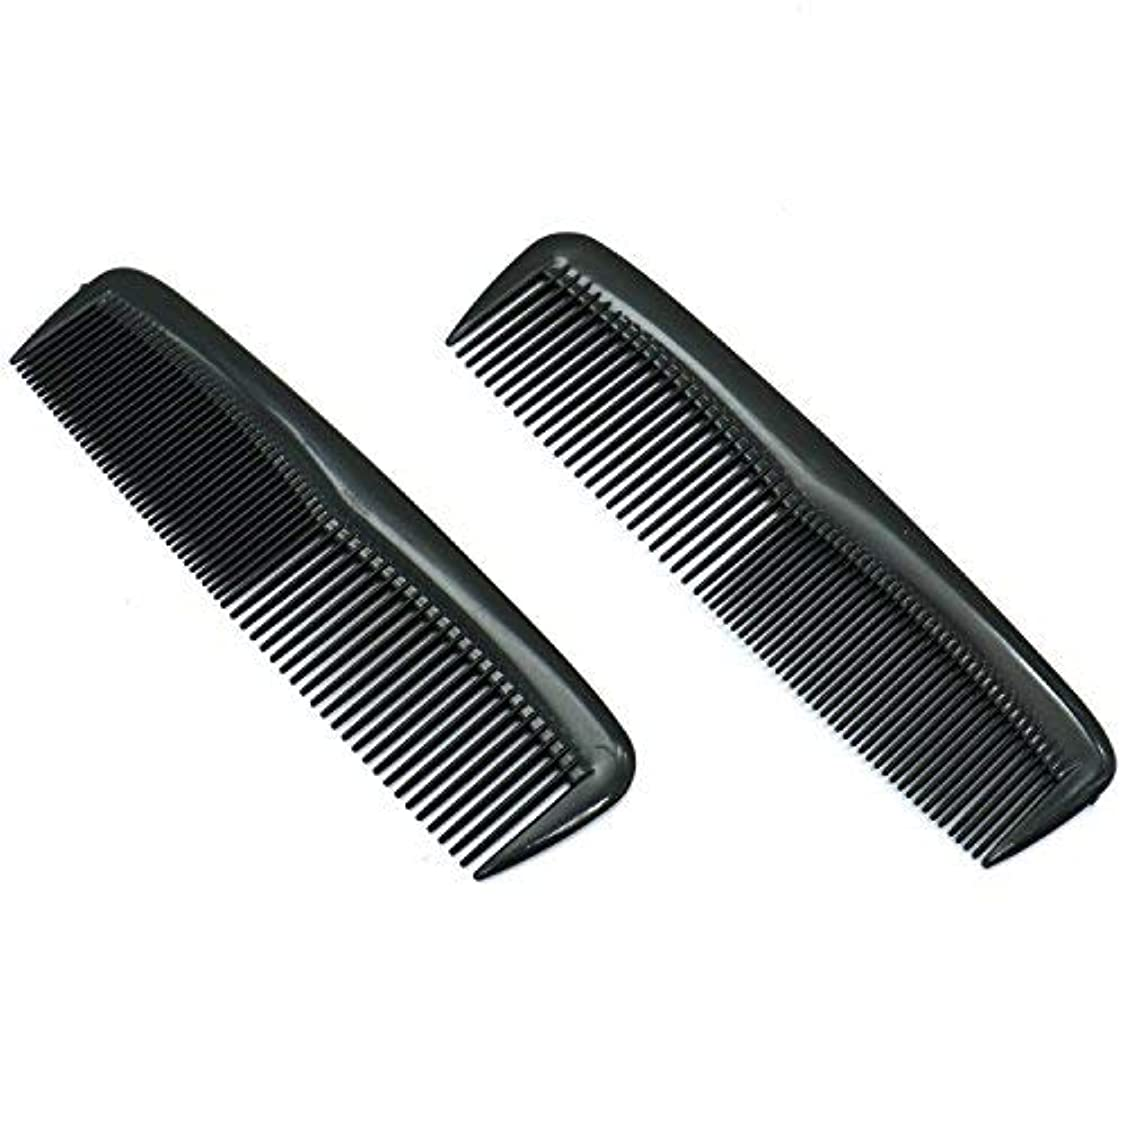 以降あたたかい証明するBuorsa Pack of 12 Quality Pocket Hair Comb Beard & Mustache Combs for Men's Hair Beard Mustache and Sideburns, Durable Plastic, Black [並行輸入品]